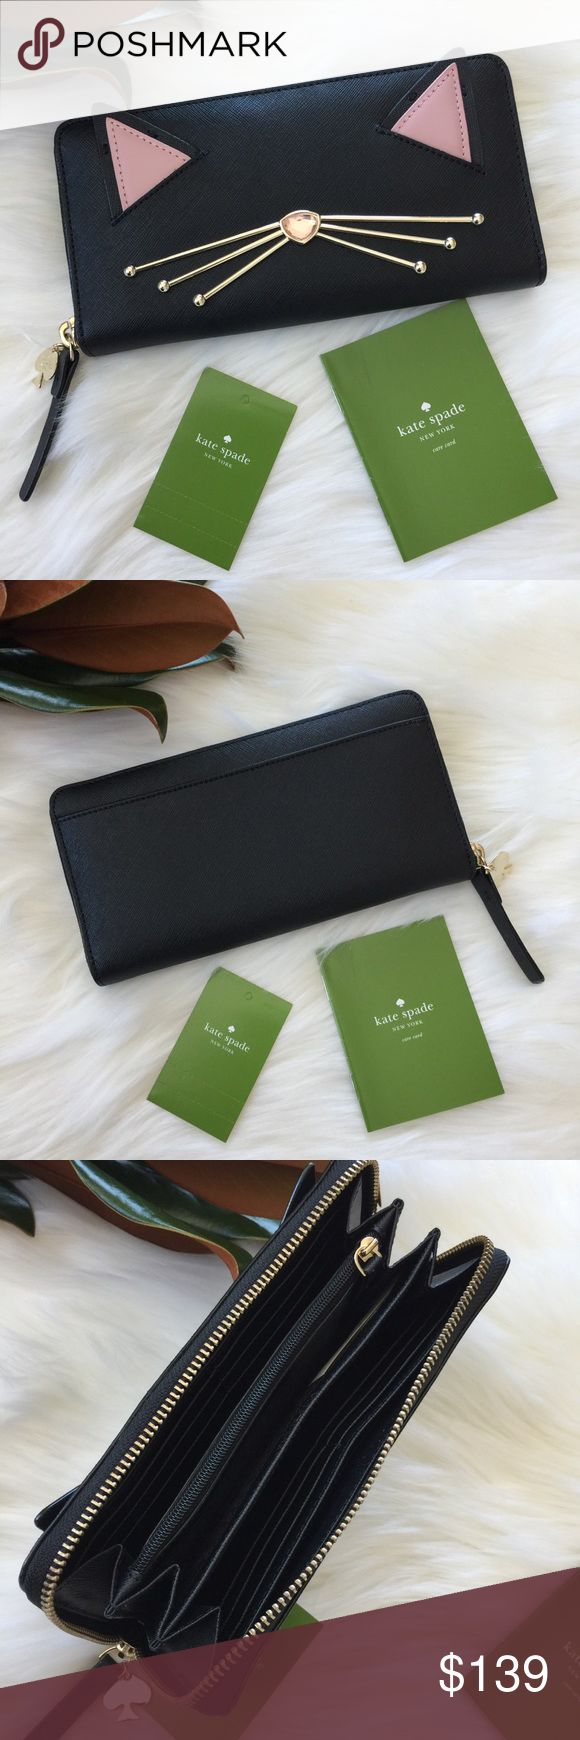 """Kate Spade 🌷Please Read the description! Thanks!🌷  Brand new with tag. No dust bag Retail: $199 Color: black/pink/gold 4.7"""" x 1.1""""x 8"""" zip around, 12 credit card slots,  3 Full-Length Cash Compartments, zipper change pocket and exterior slide pocket  Color may be slightly different bcz of lighting  🌈💯AUTHENTIC 🌈All sales are final 🚭Smoke & Pet free home 🙅NO TRADES  🙅NO HOLDS kate spade Bags Wallets"""